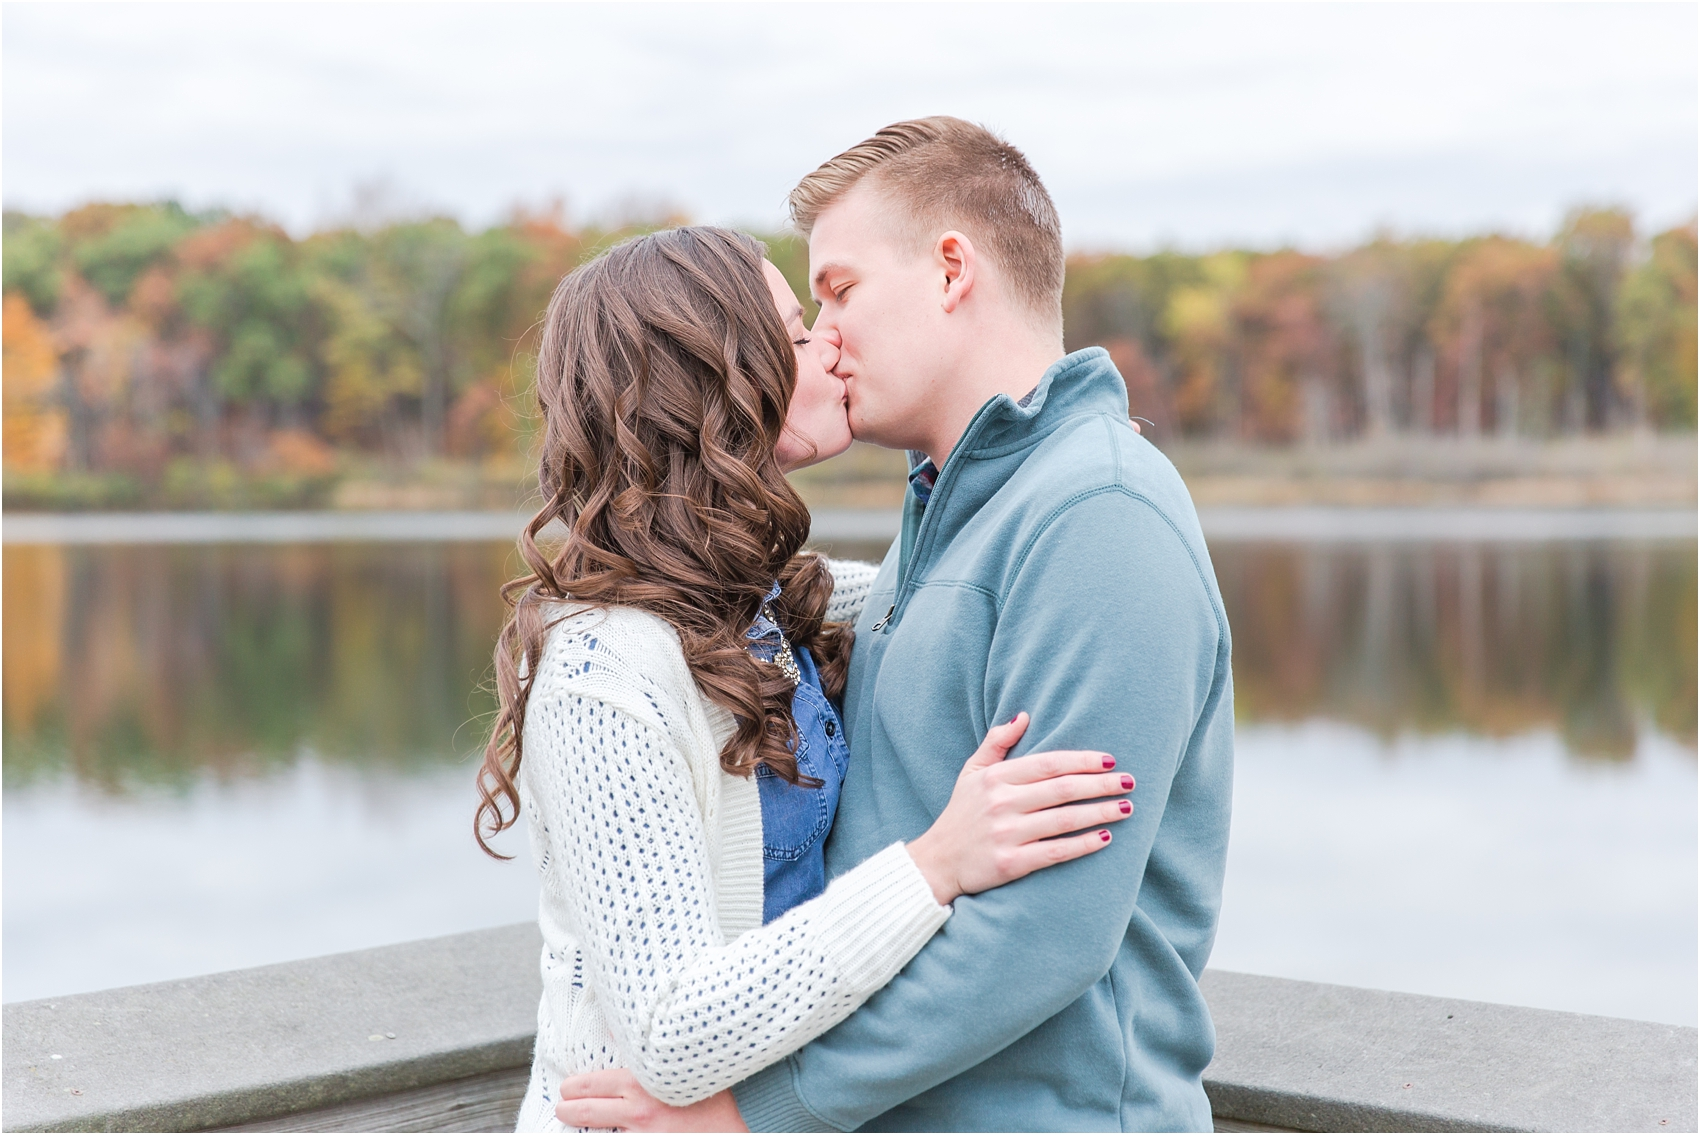 colorful-fall-engagement-photos-at-the-lake-at-huron-meadows-metropark-in-brighton-michigan-by-courtney-carolyn-photography_0033.jpg